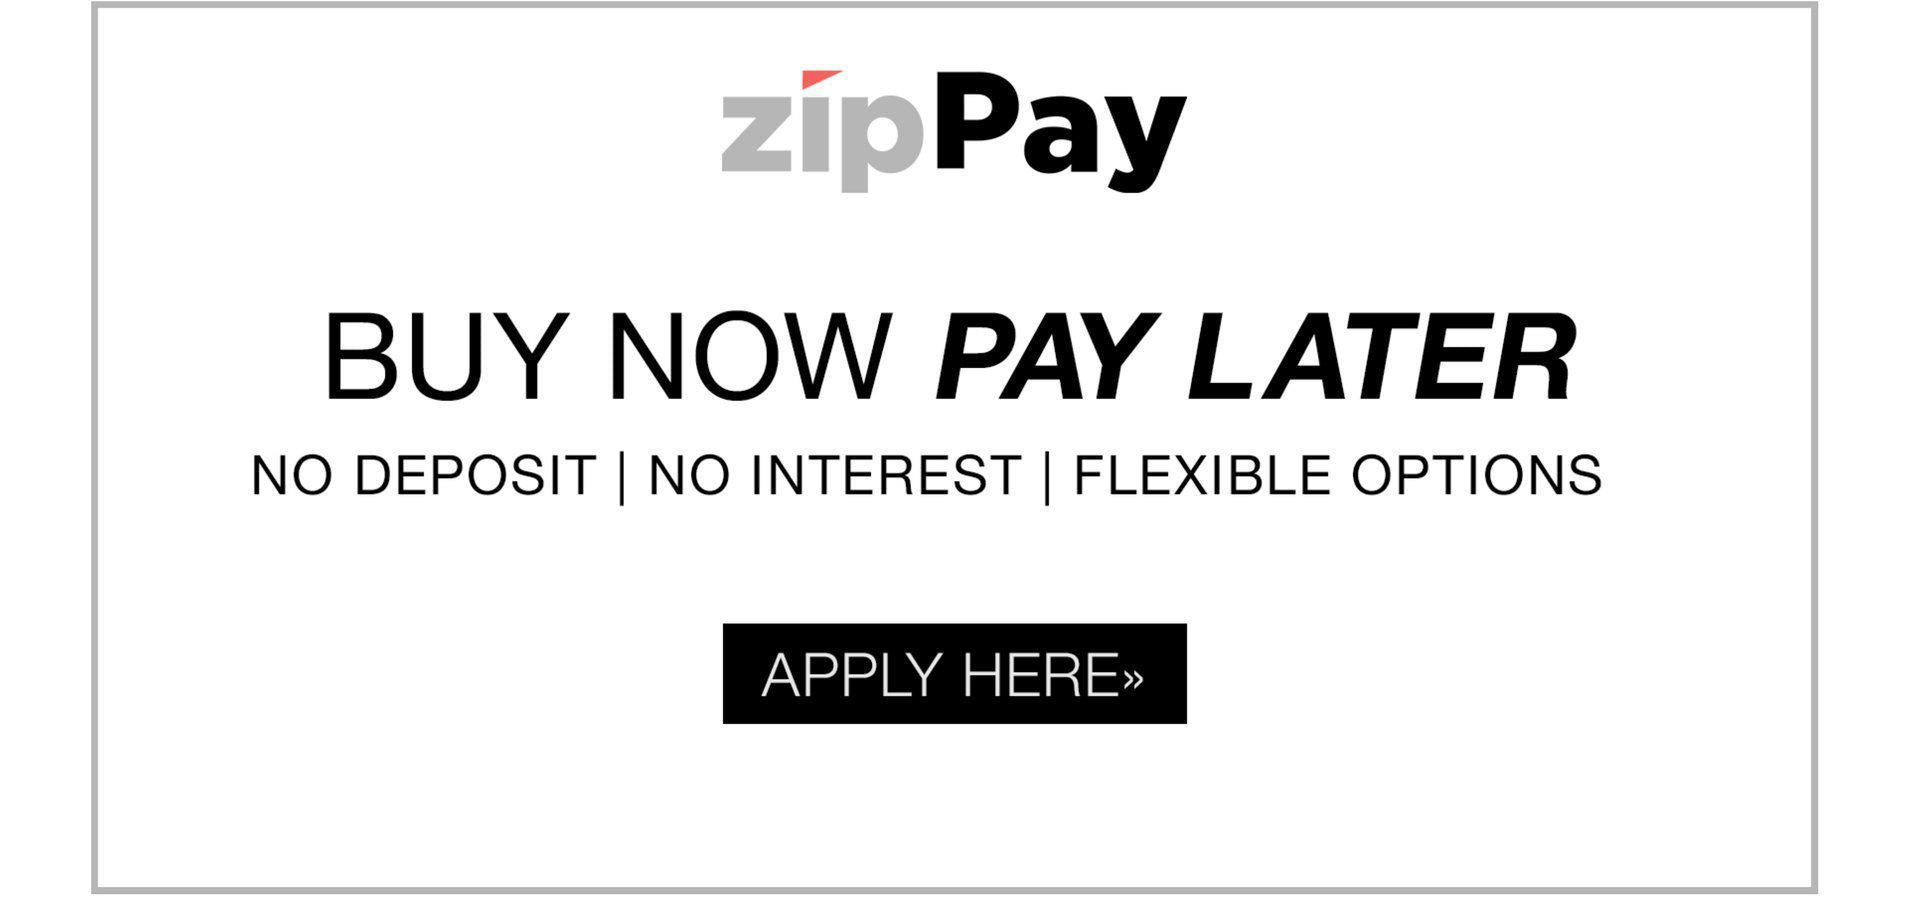 ZipPay - Buy Now, Pay Later